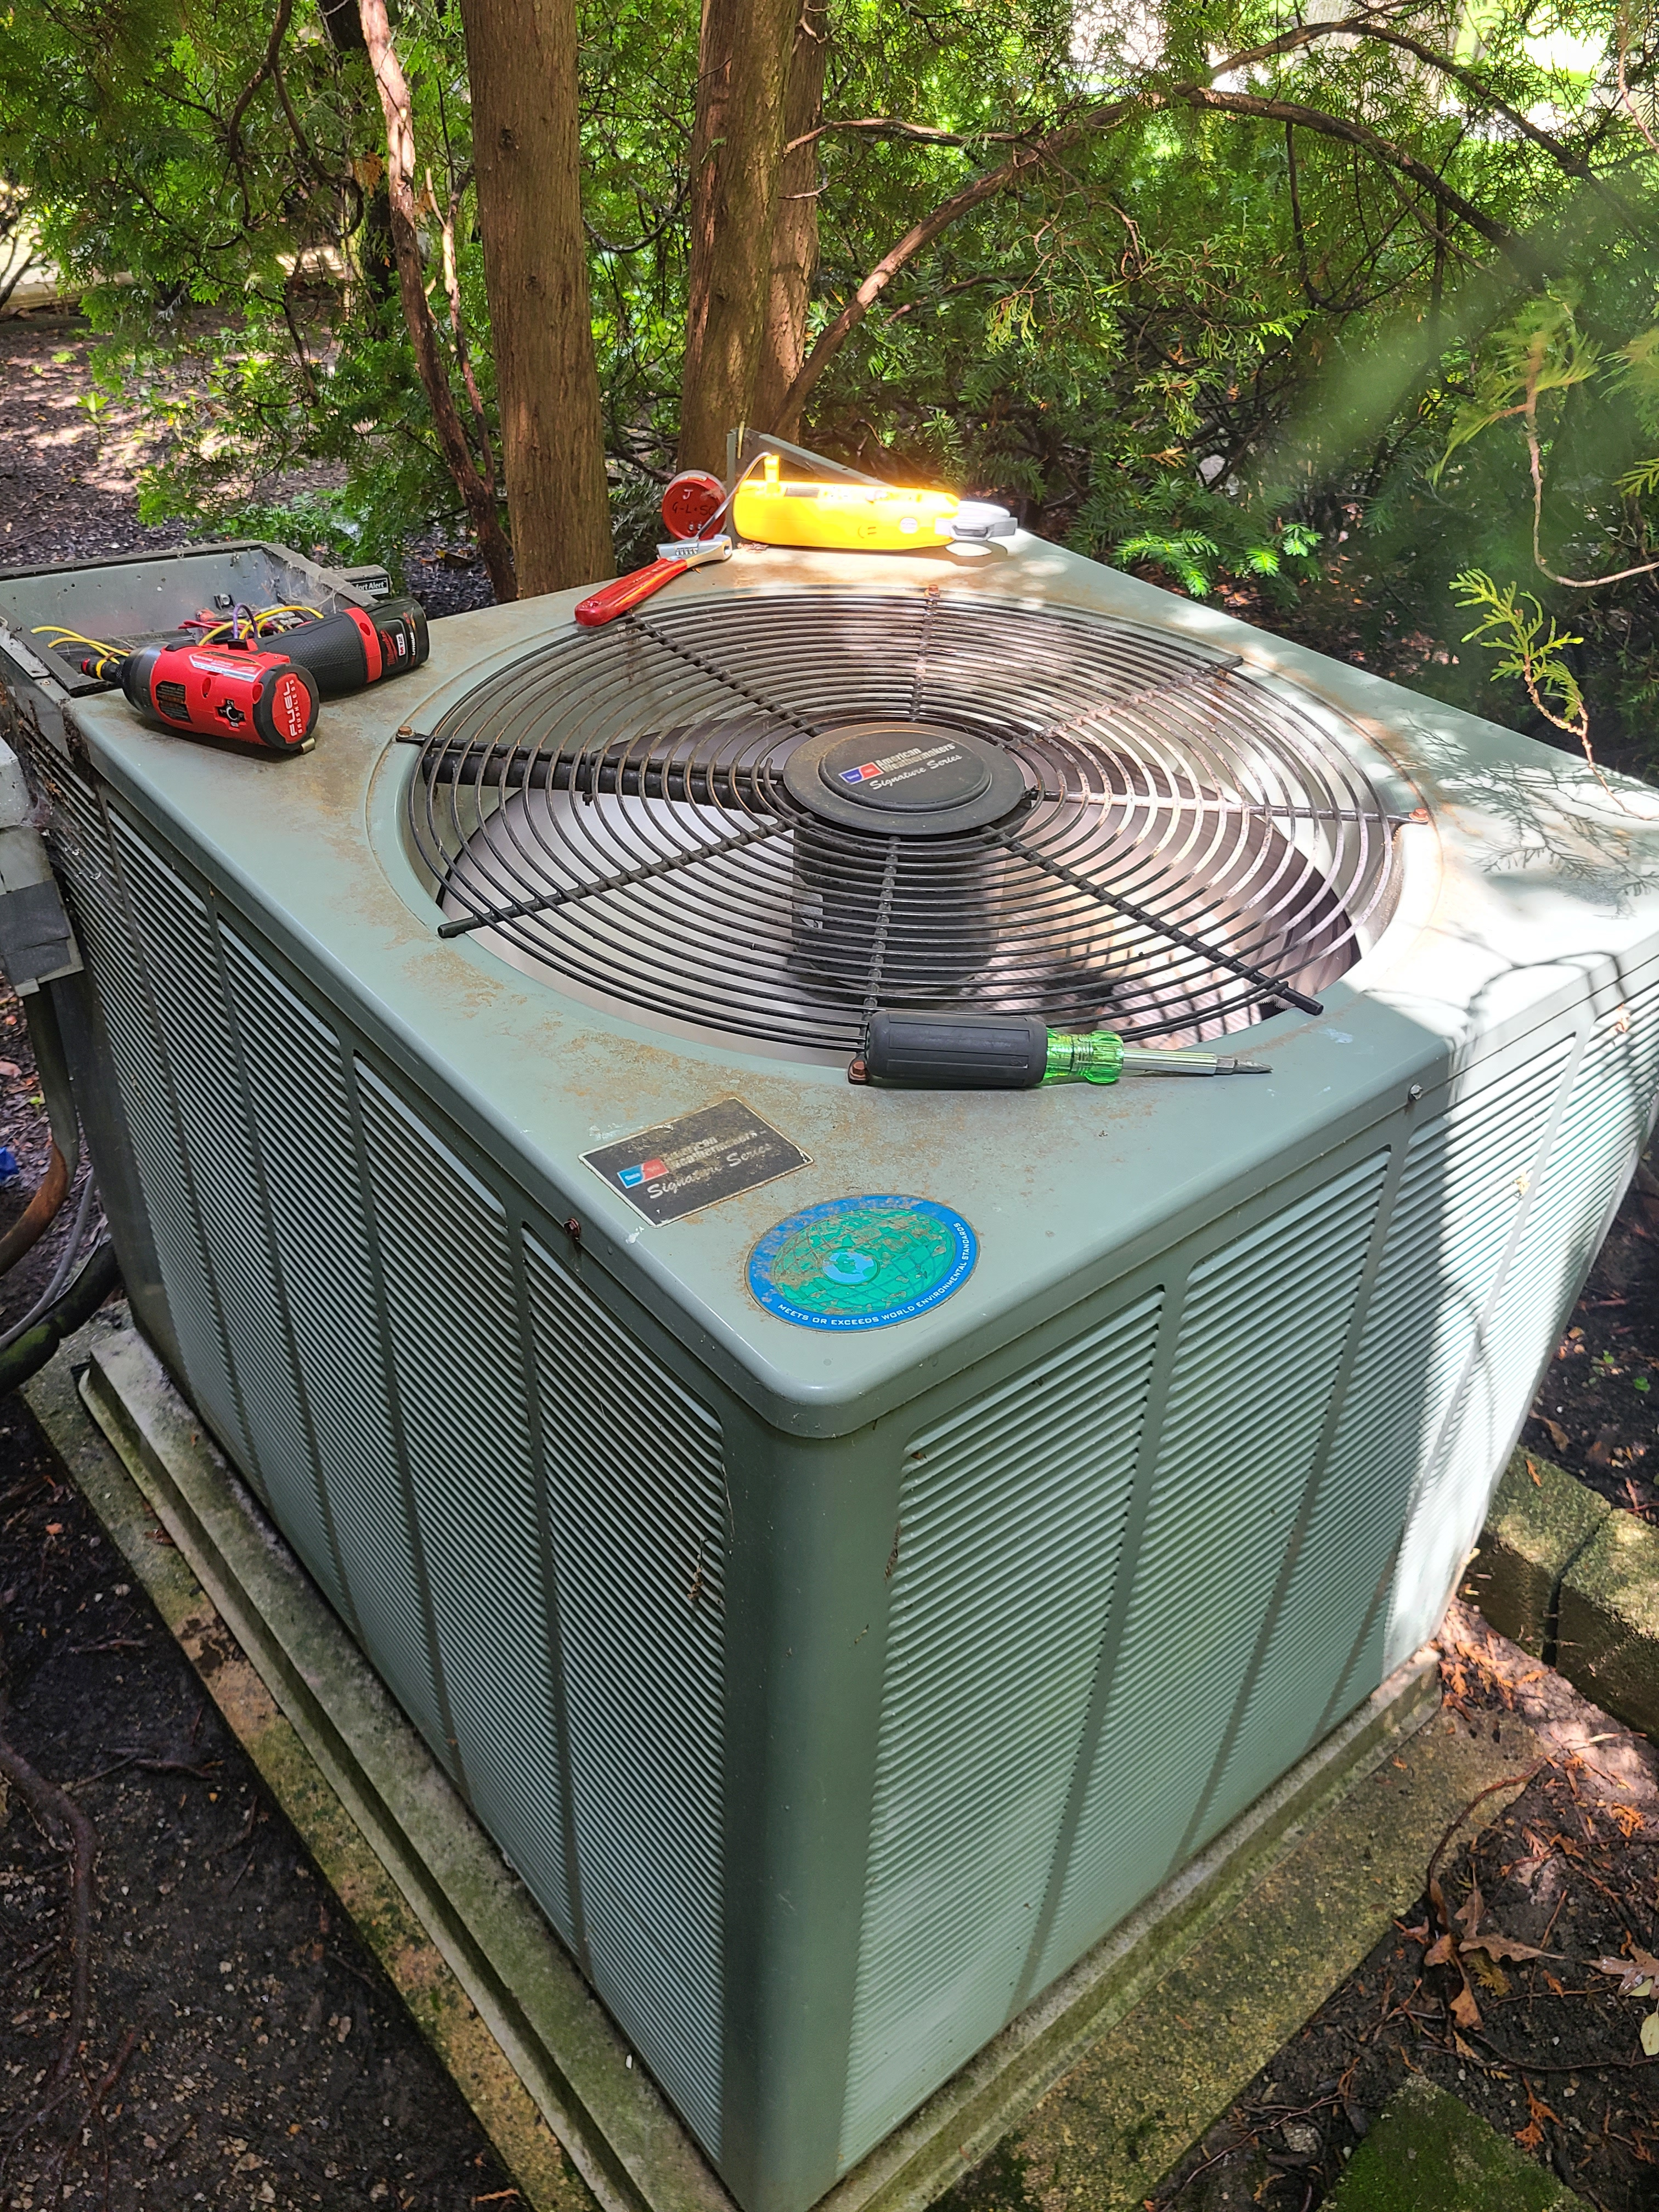 Rheem ac summer tune up. System cleaned and checked and ready for summer.